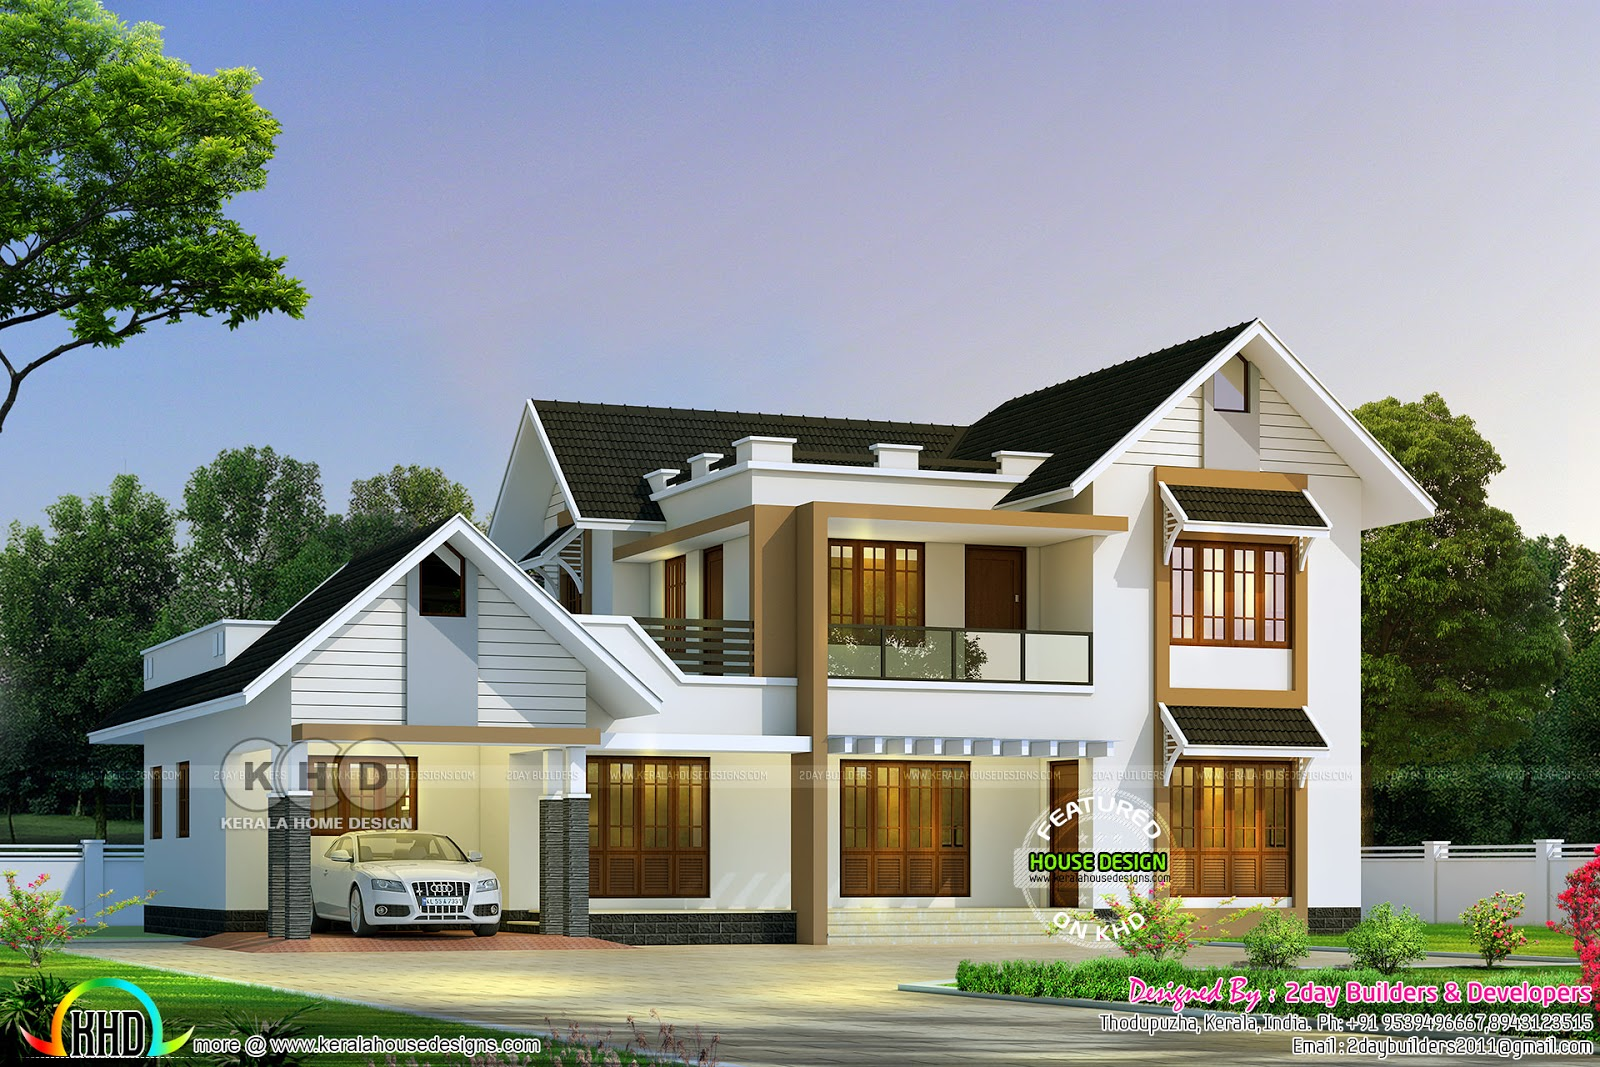 semi-contemporary-kerala-home-design.jpg